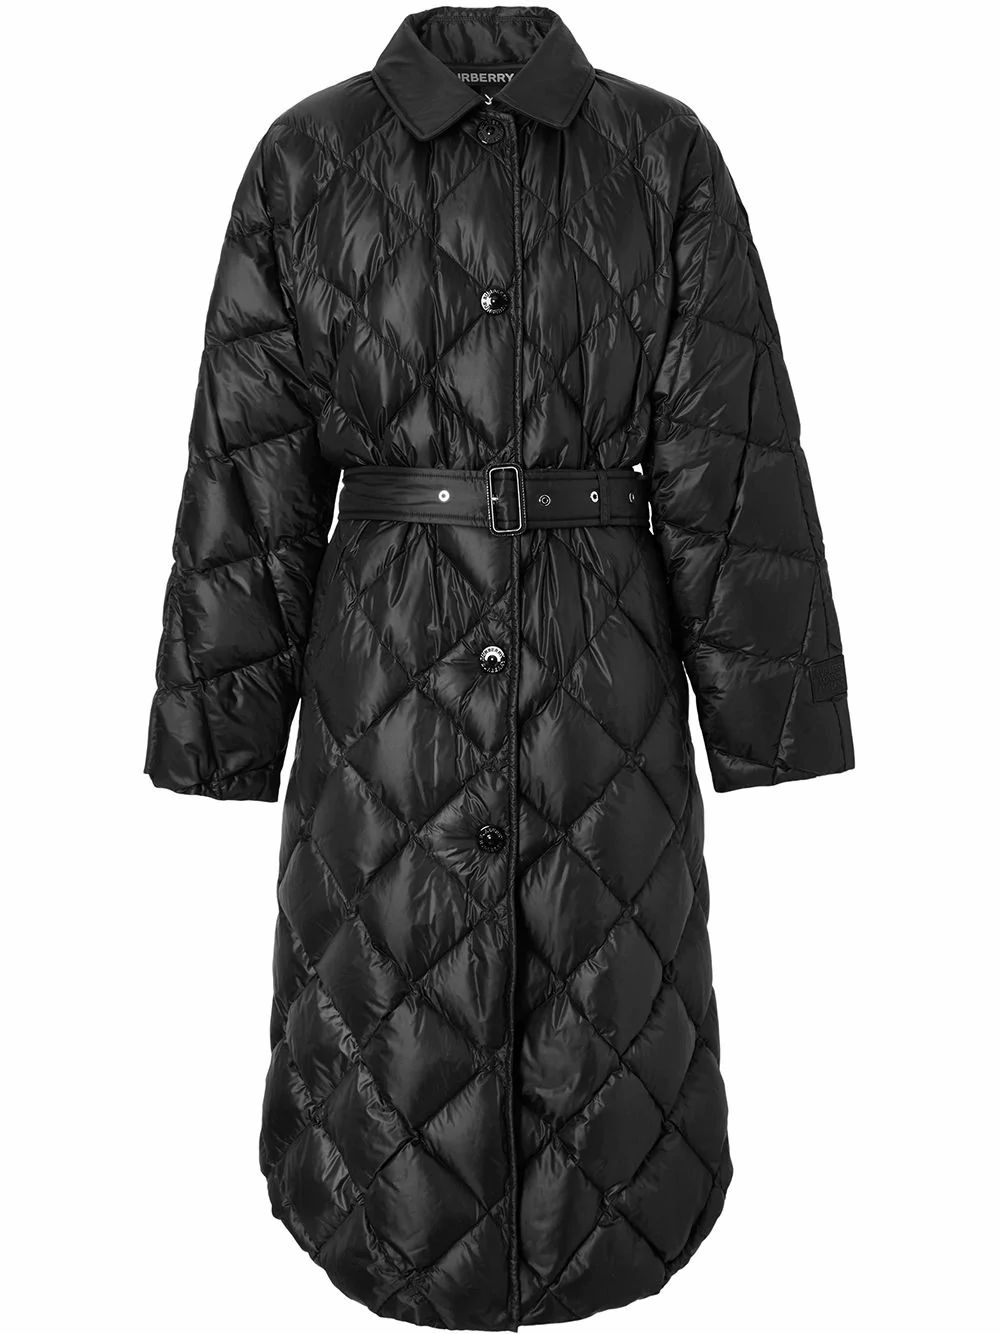 Burberry BURBERRY WOMEN'S BLACK POLYAMIDE OUTERWEAR JACKET